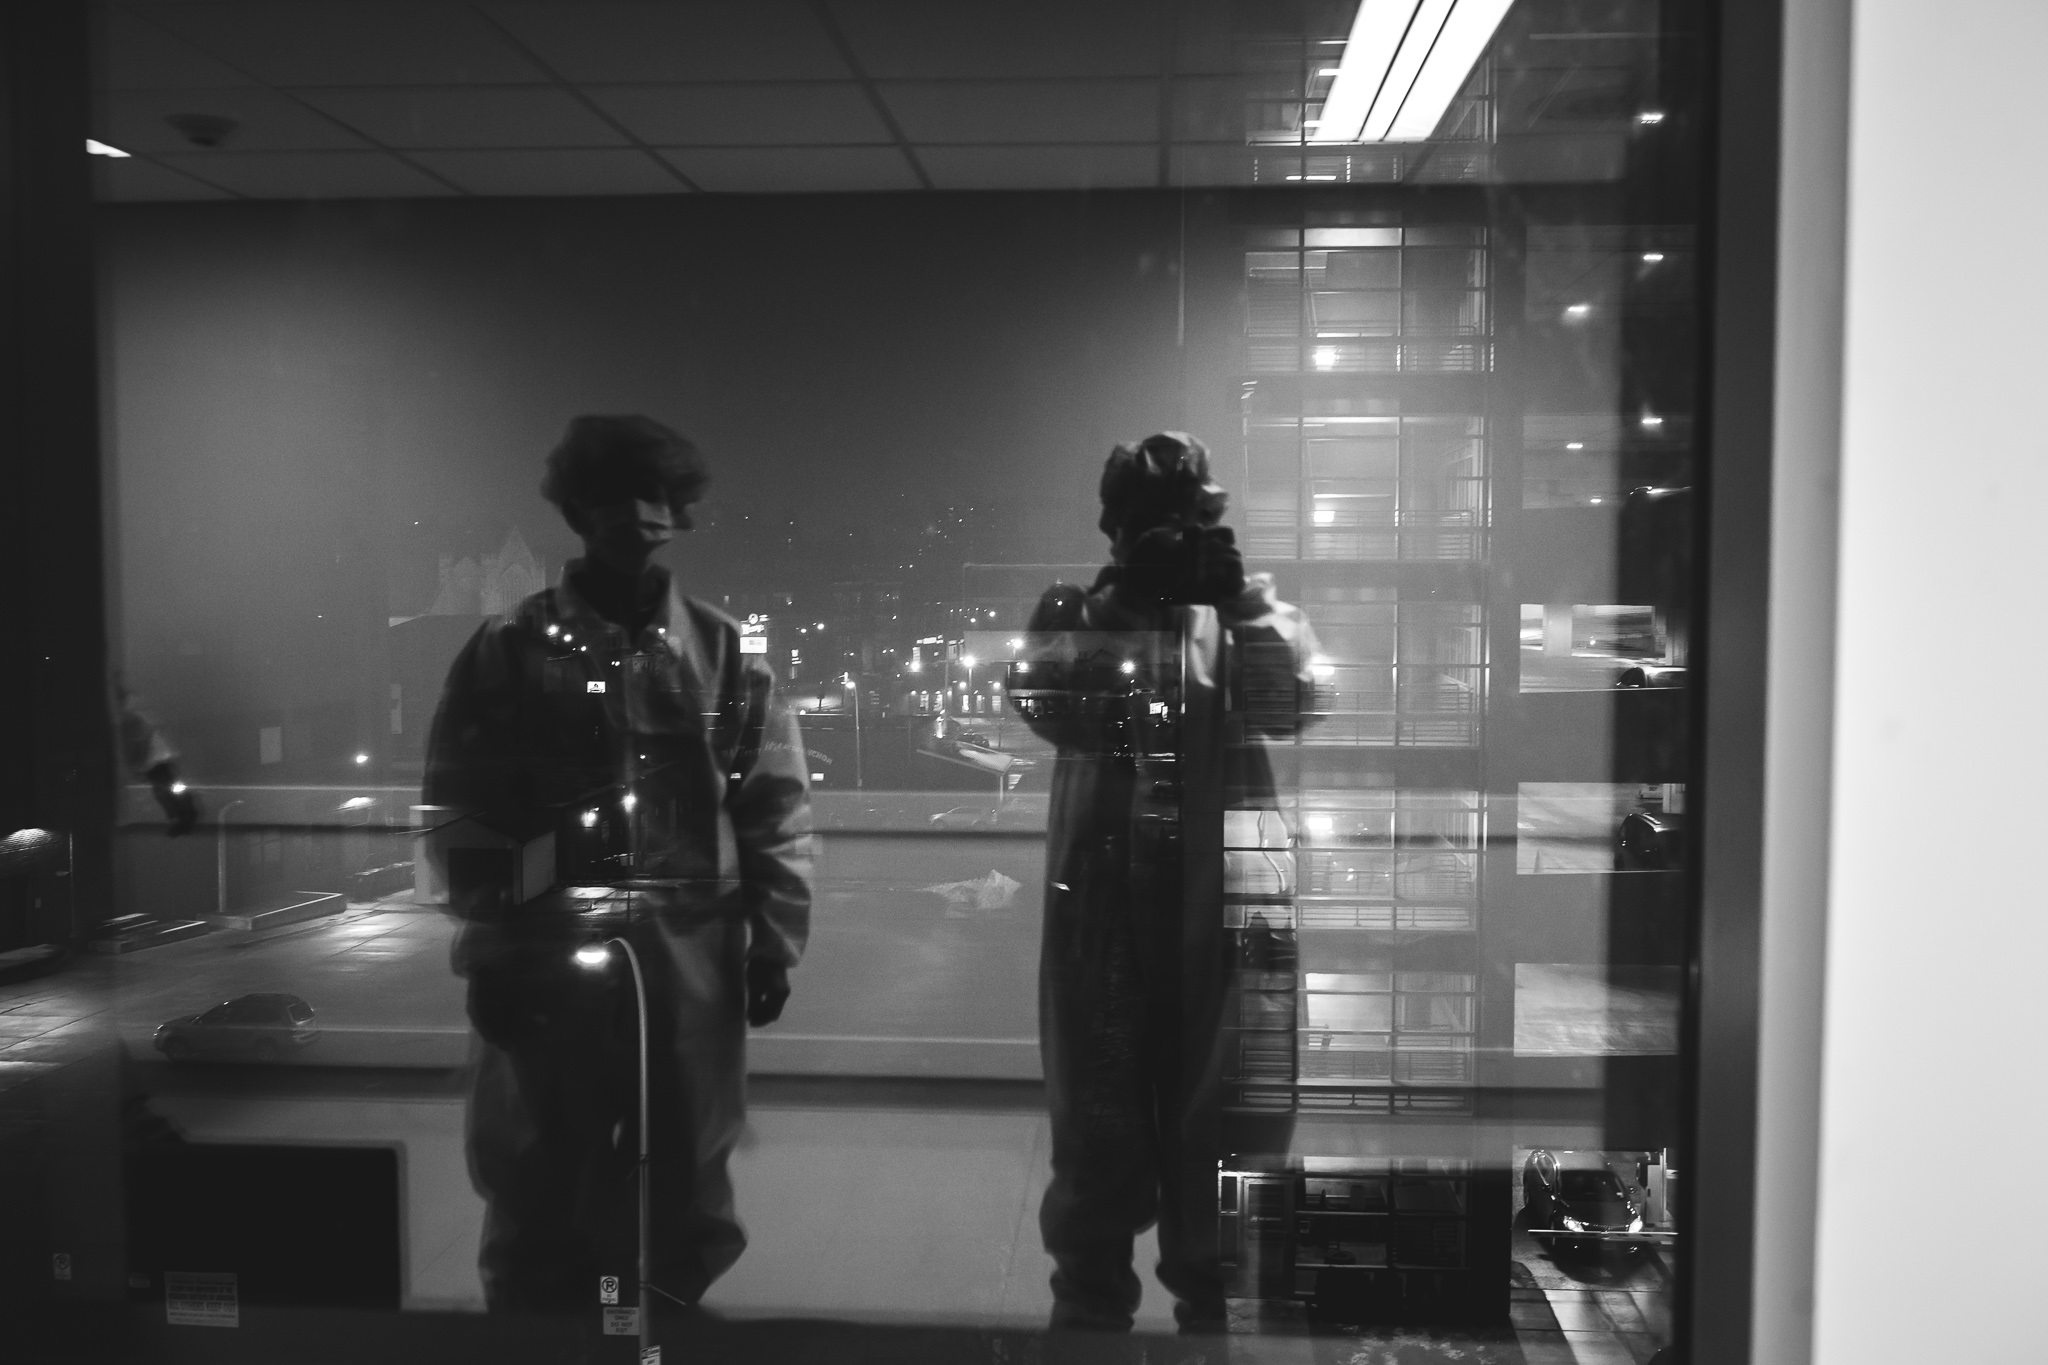 Black and white reflection of a man and photographer in a hospital window.